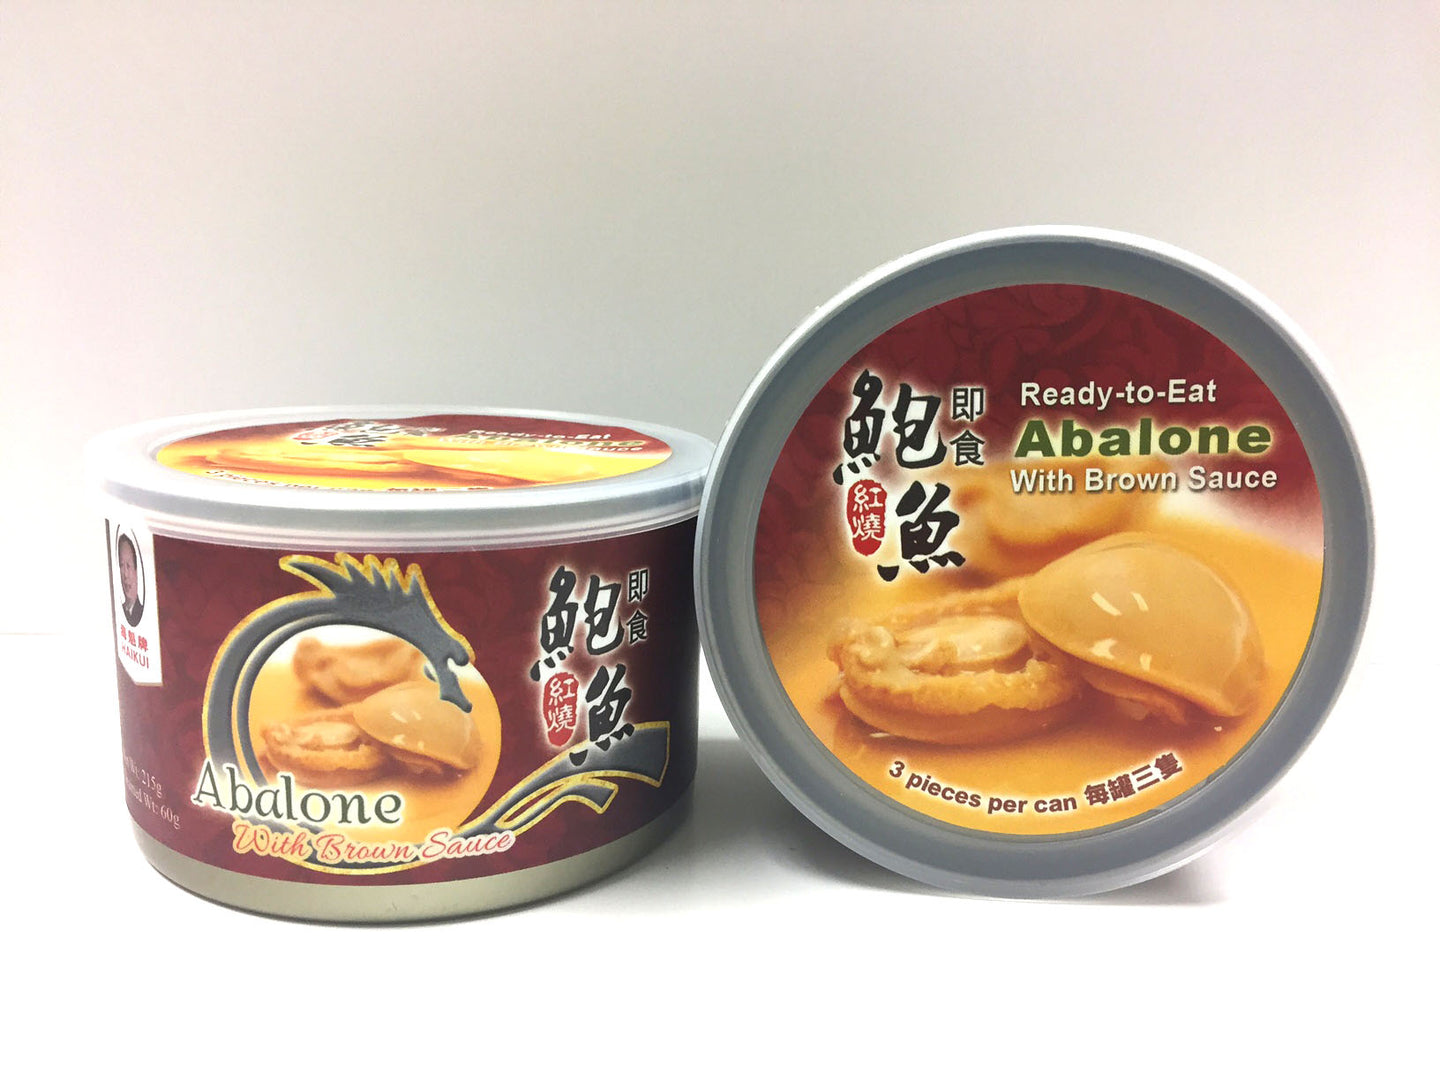 Haikui Ready-To-Eat Abalone with Brown Sauce (3pc/can) 海魁牌即食紅燒鮑魚3隻裝